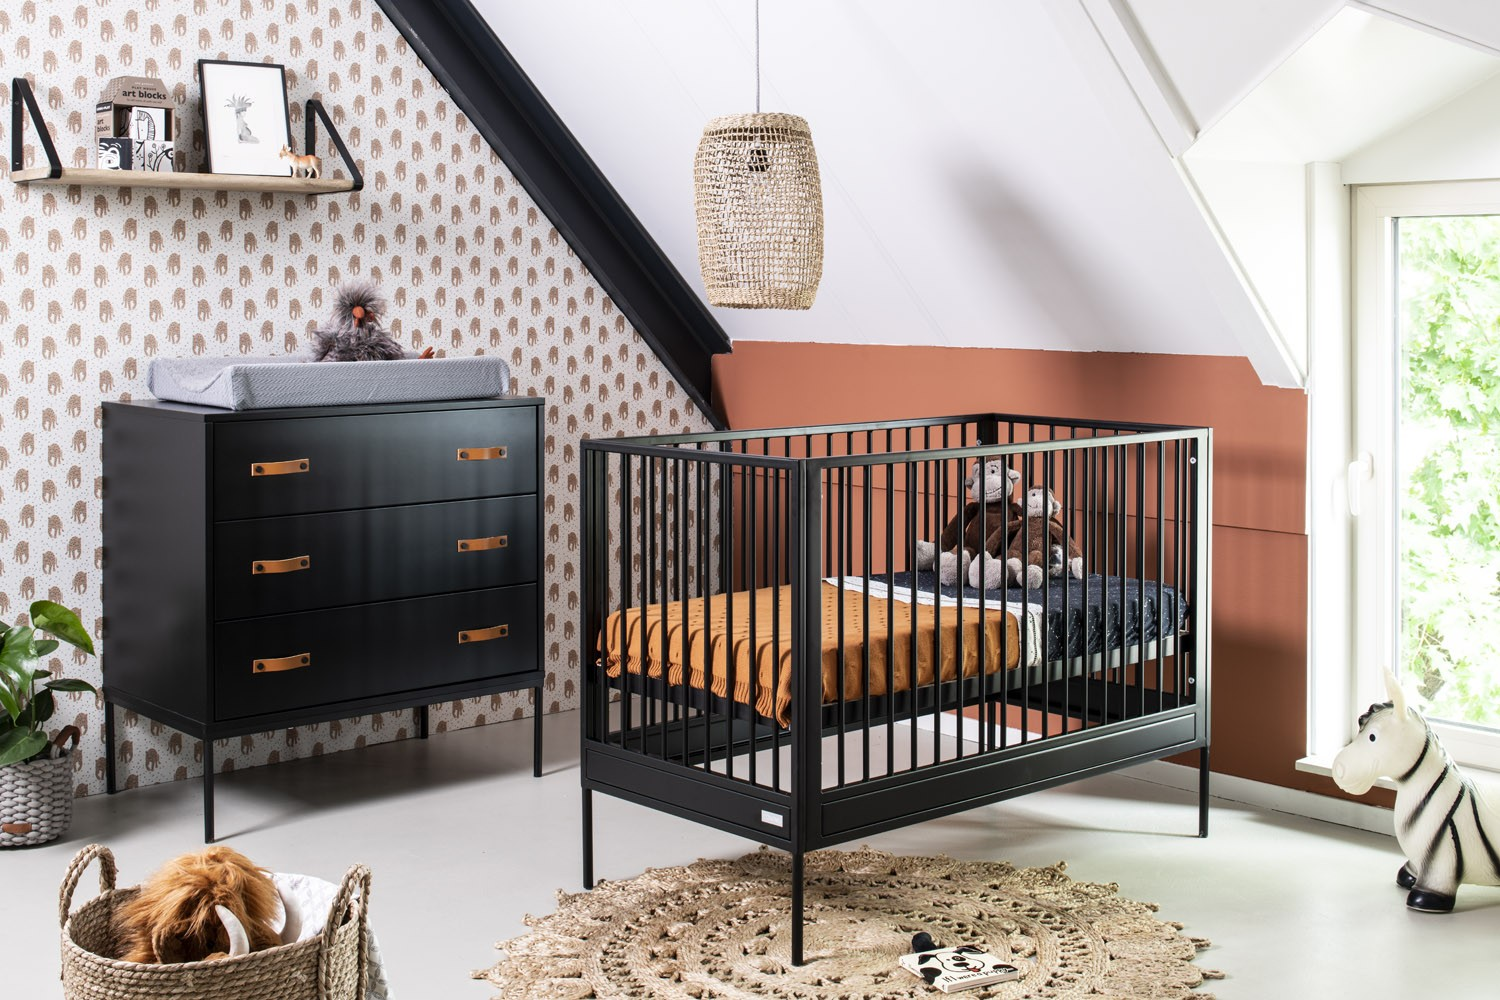 Babykamer Coming Kids Bliss Zwart Ledikant + Commode